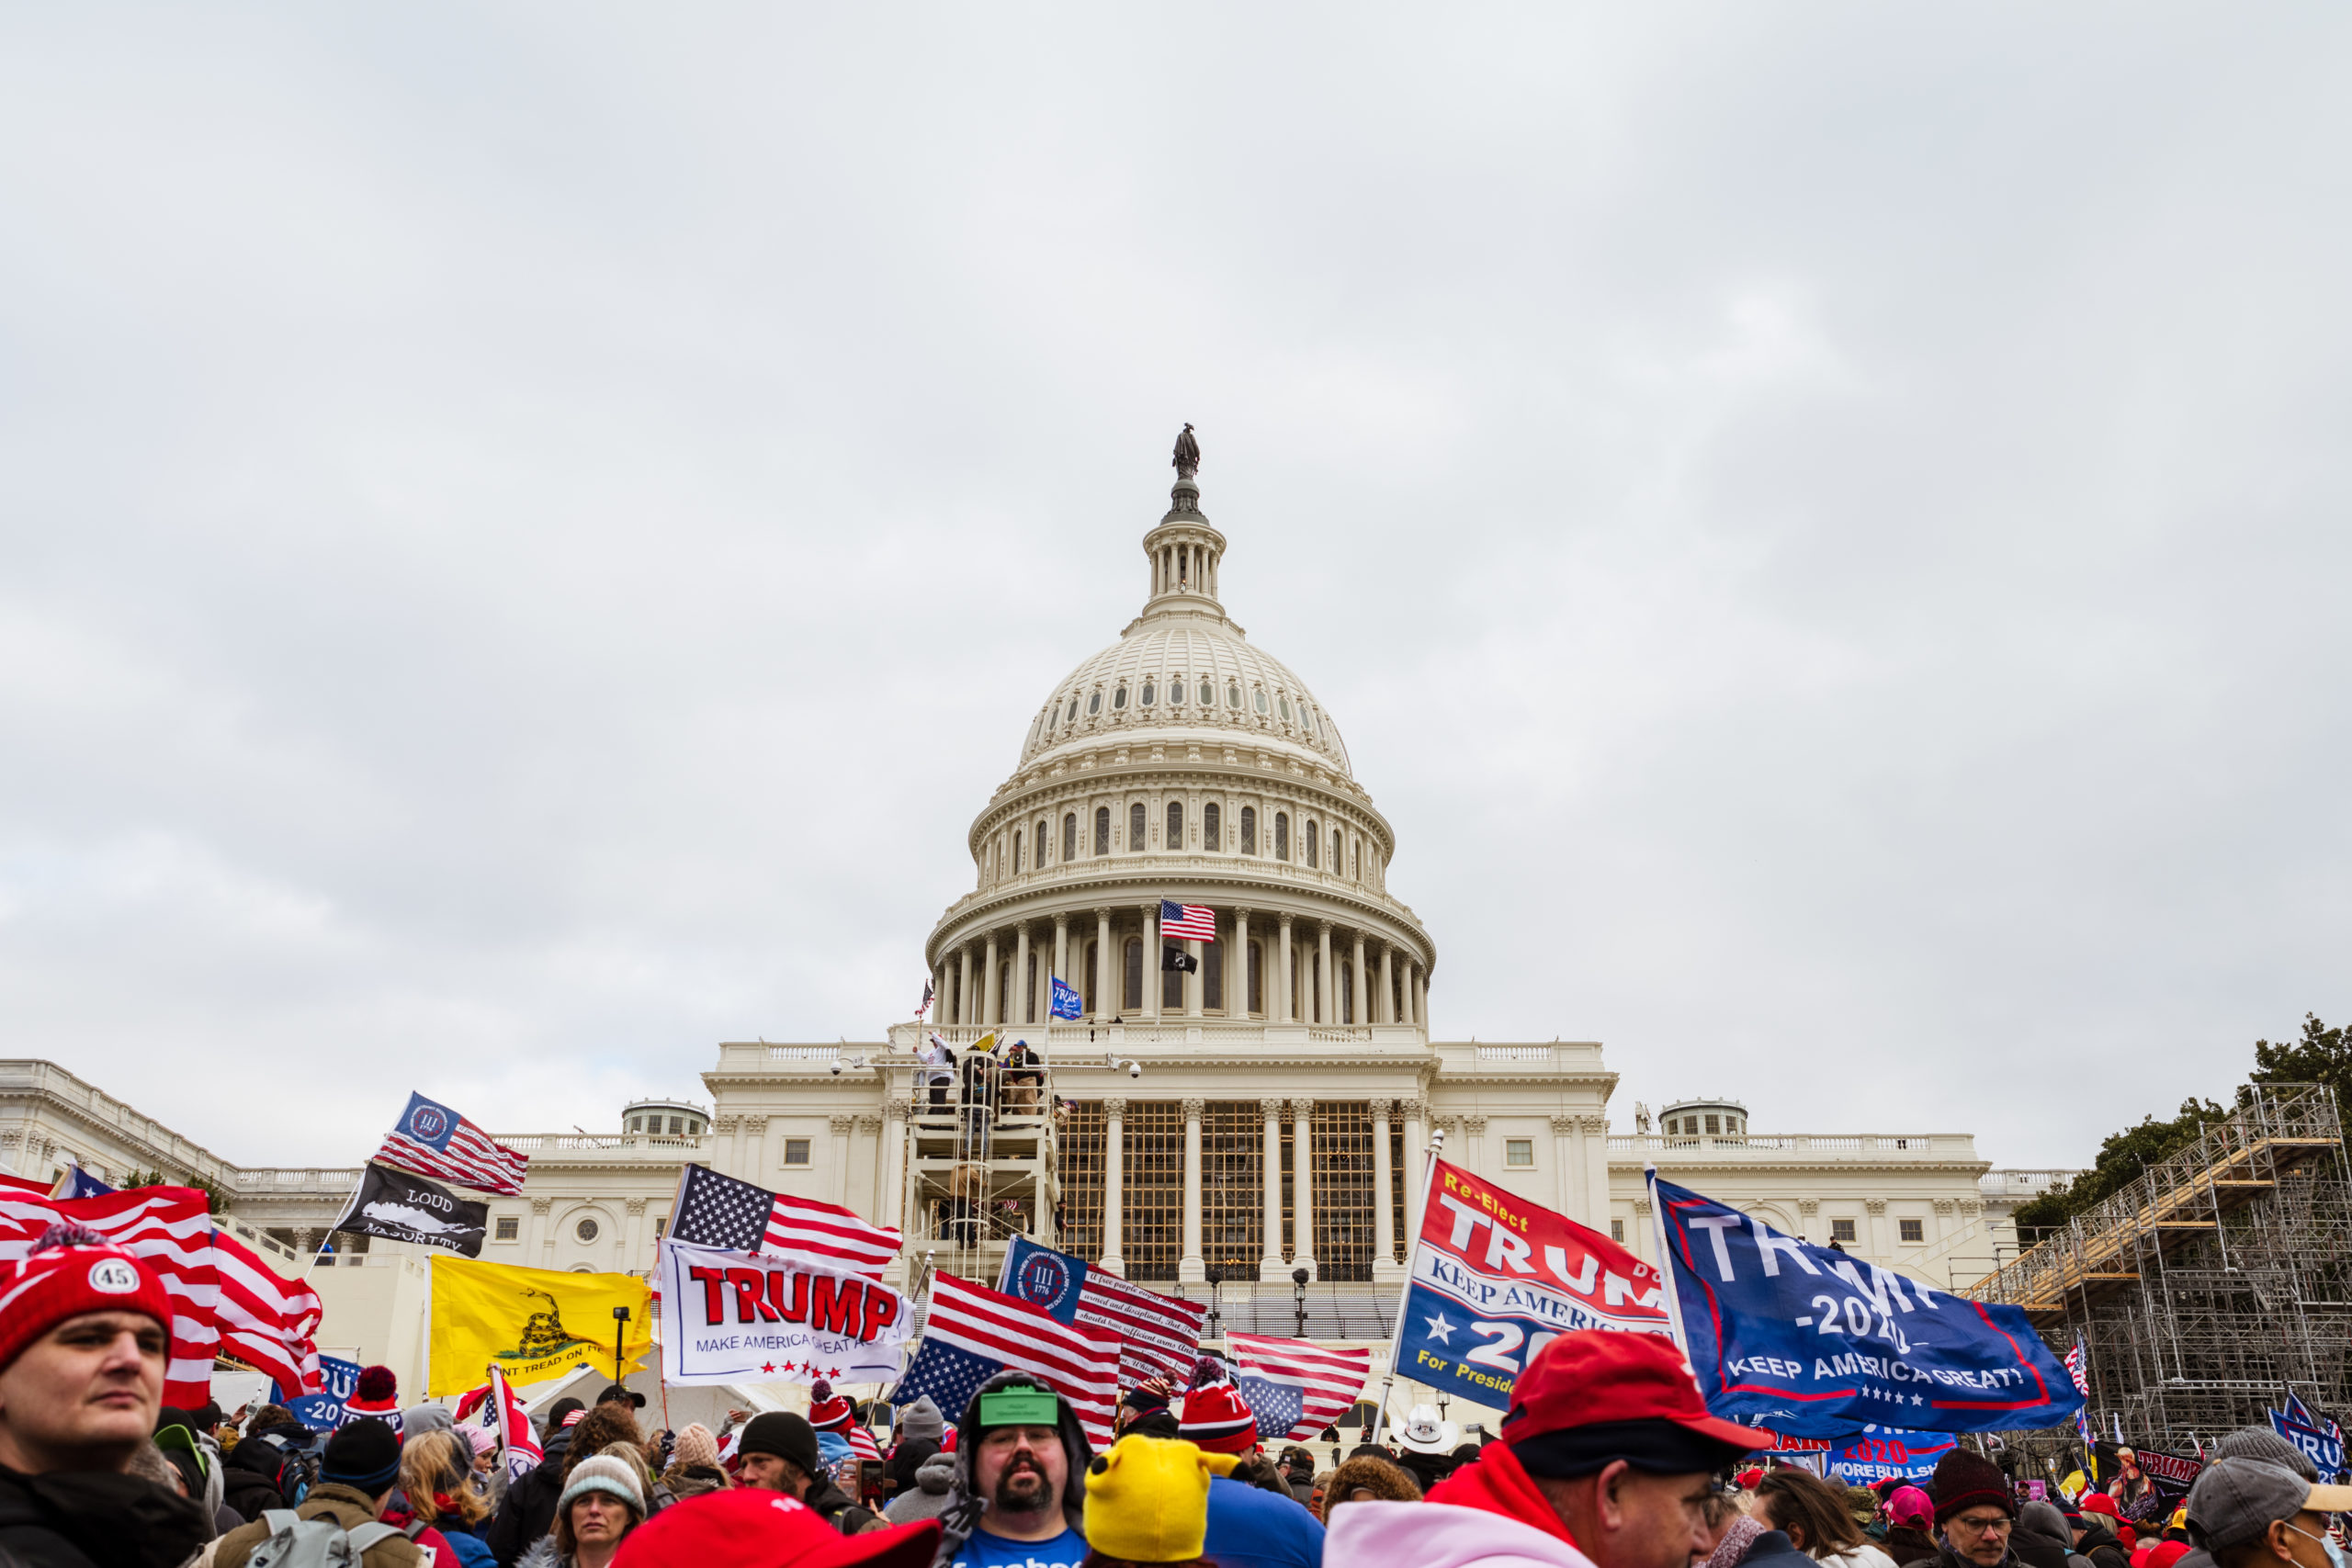 A group of pro-Trump rioters raise signs and flags on the grounds of the Capitol Building on January 6, 2021 in Washington, DC. (Jon Cherry/Getty Images)